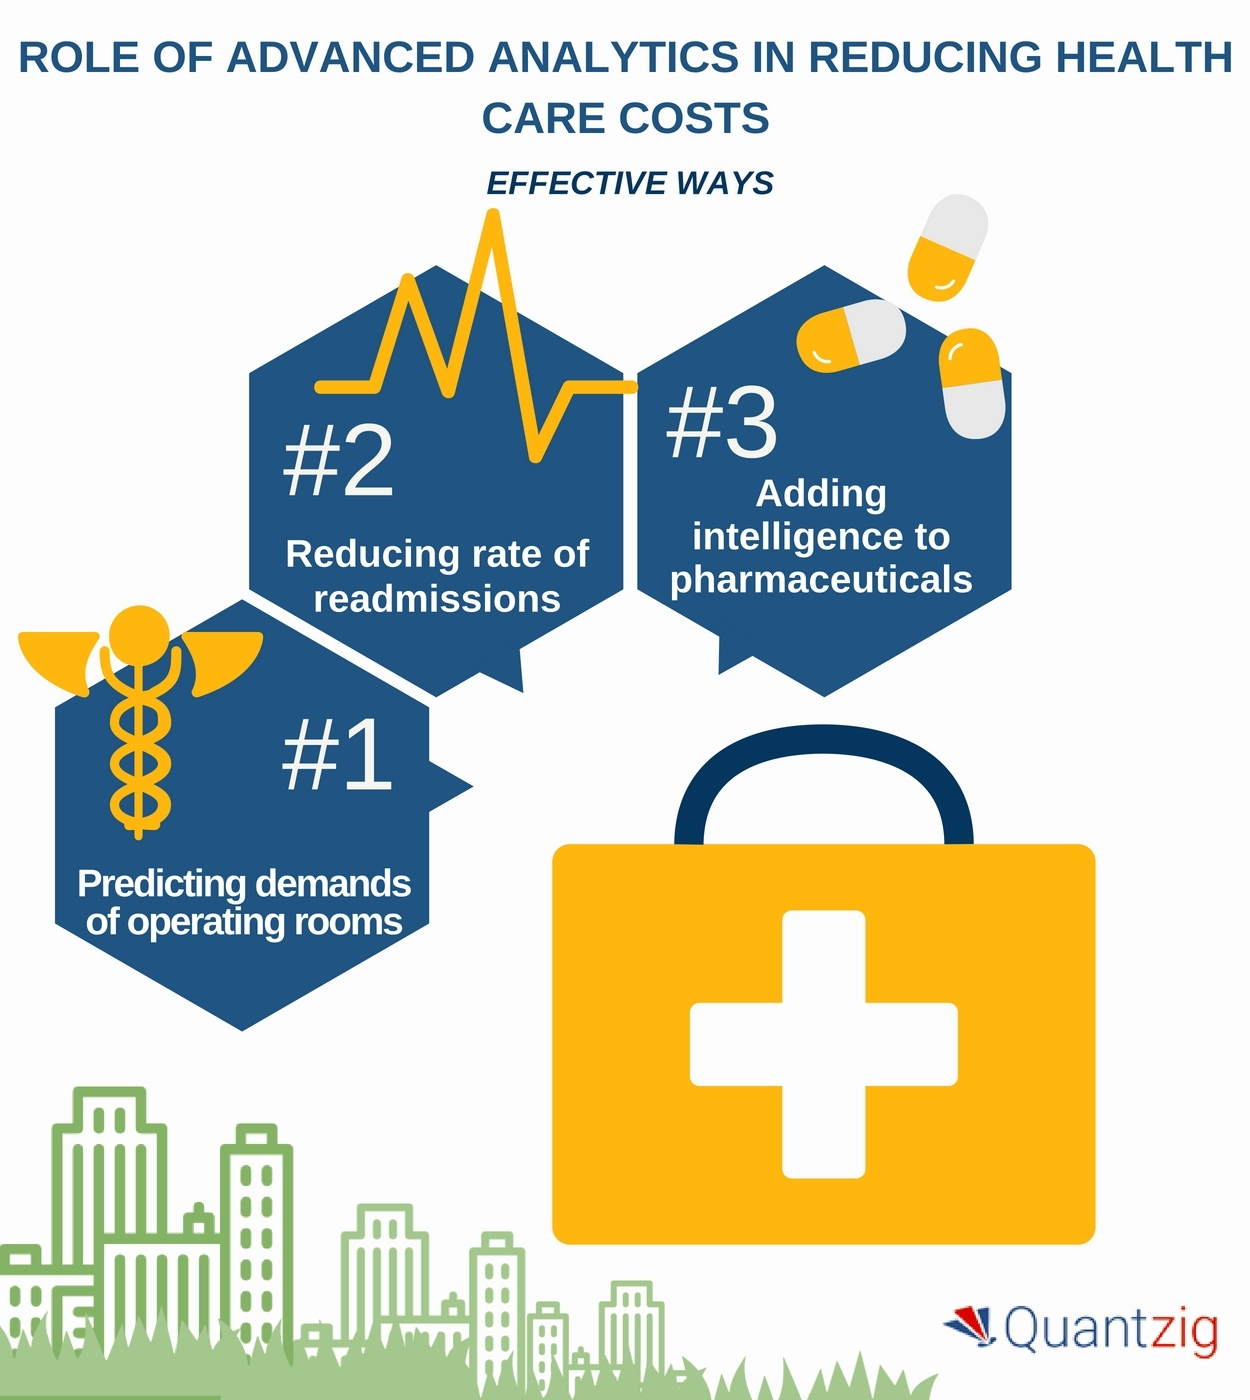 Tips to Reduce Healthcare Costs With Advanced Analytics   Quantzig    Business Wire